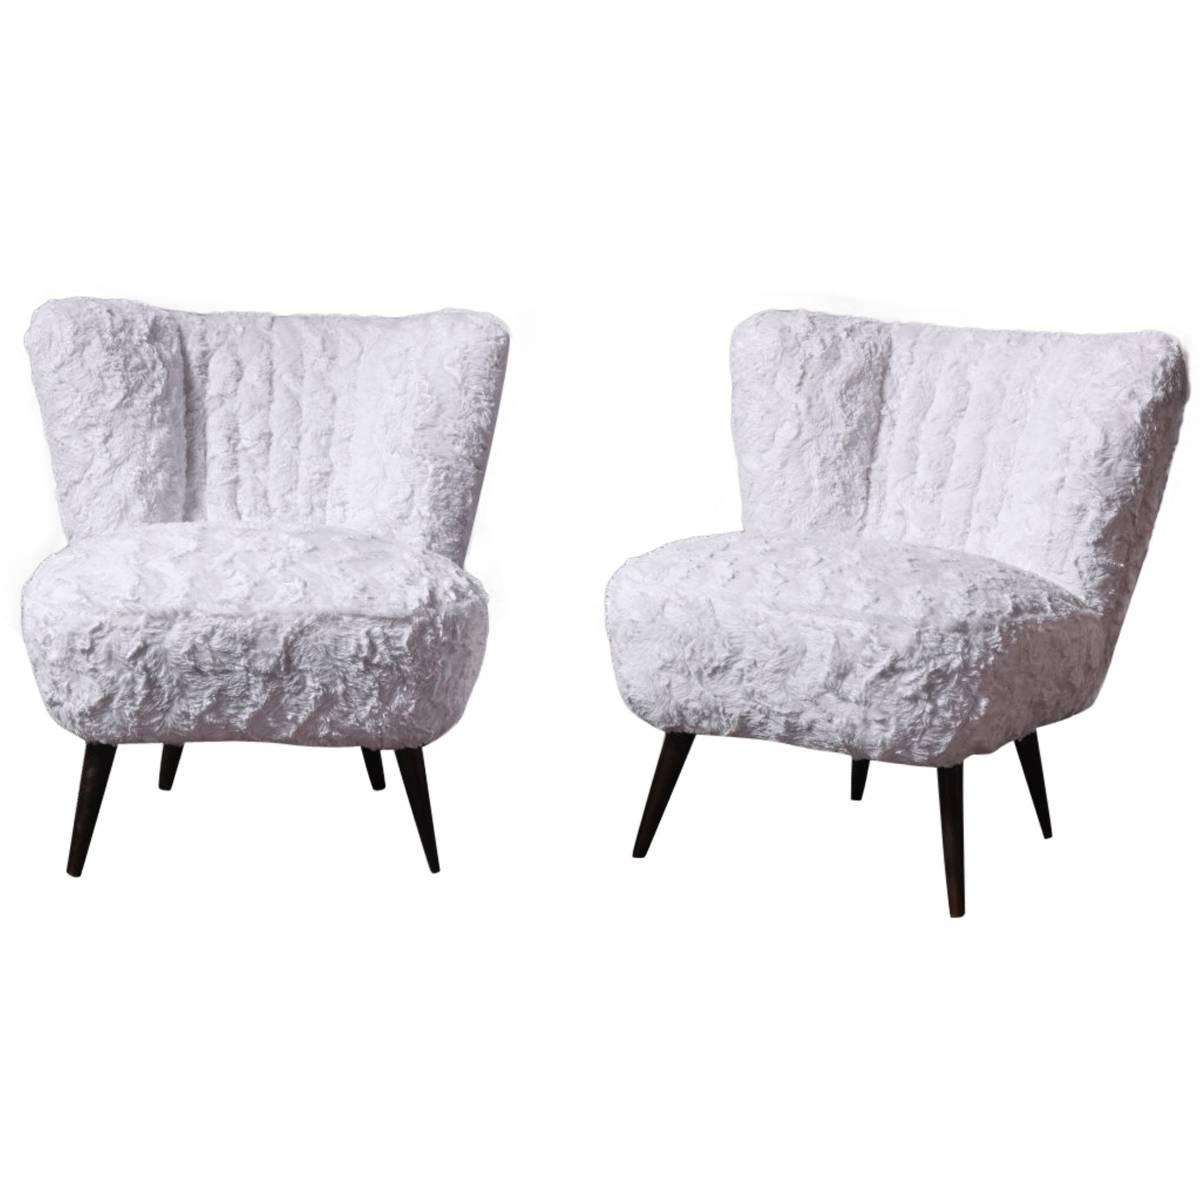 Pair Of Cocktail Chairs In Faux Fur Modernism